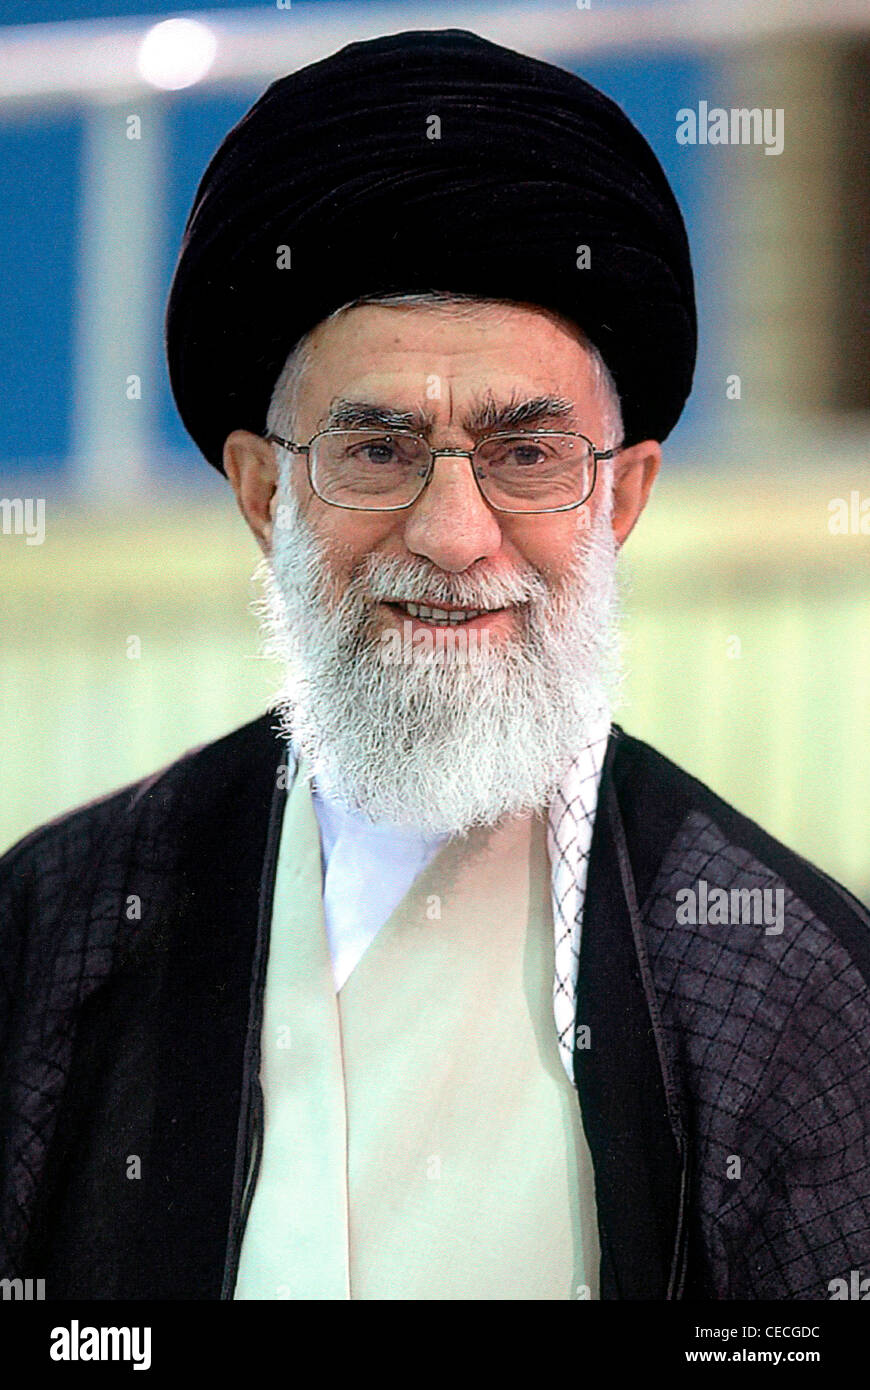 Ayatollah Seyyed Ali Khamenei - *17.07.1939: Portrait of the Religion leader of the Iran of 2007. Stock Photo